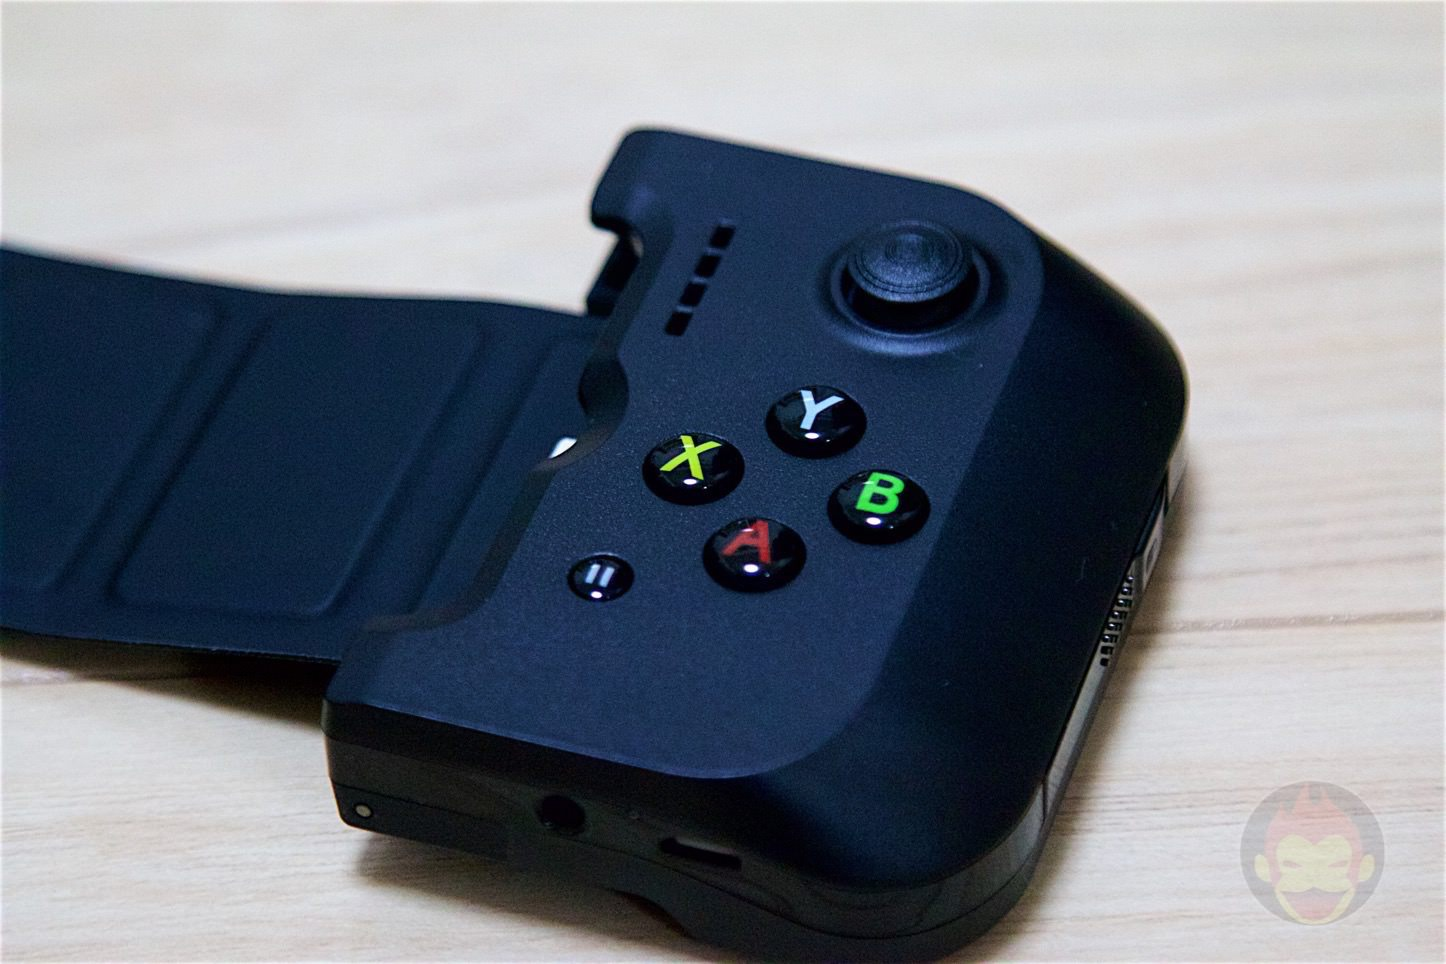 GameVice-Game-Controller-for-iPhone-06.jpg